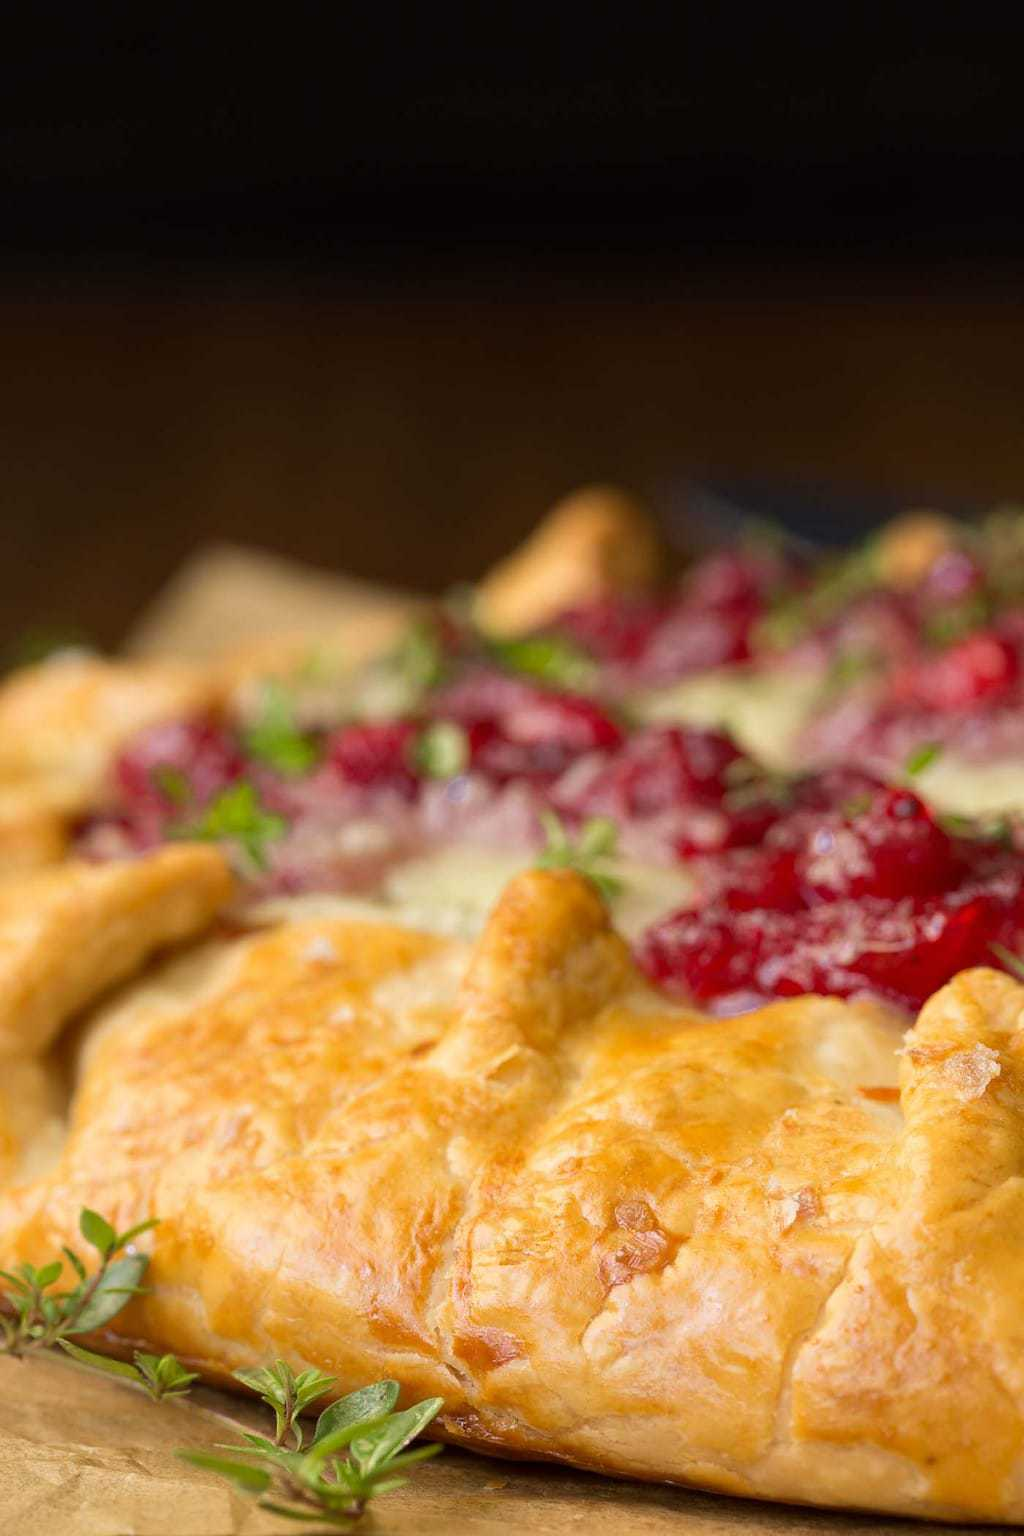 Closeup photo of the side of an Easy Turkey Dinner Galette with a garnish of thyme.